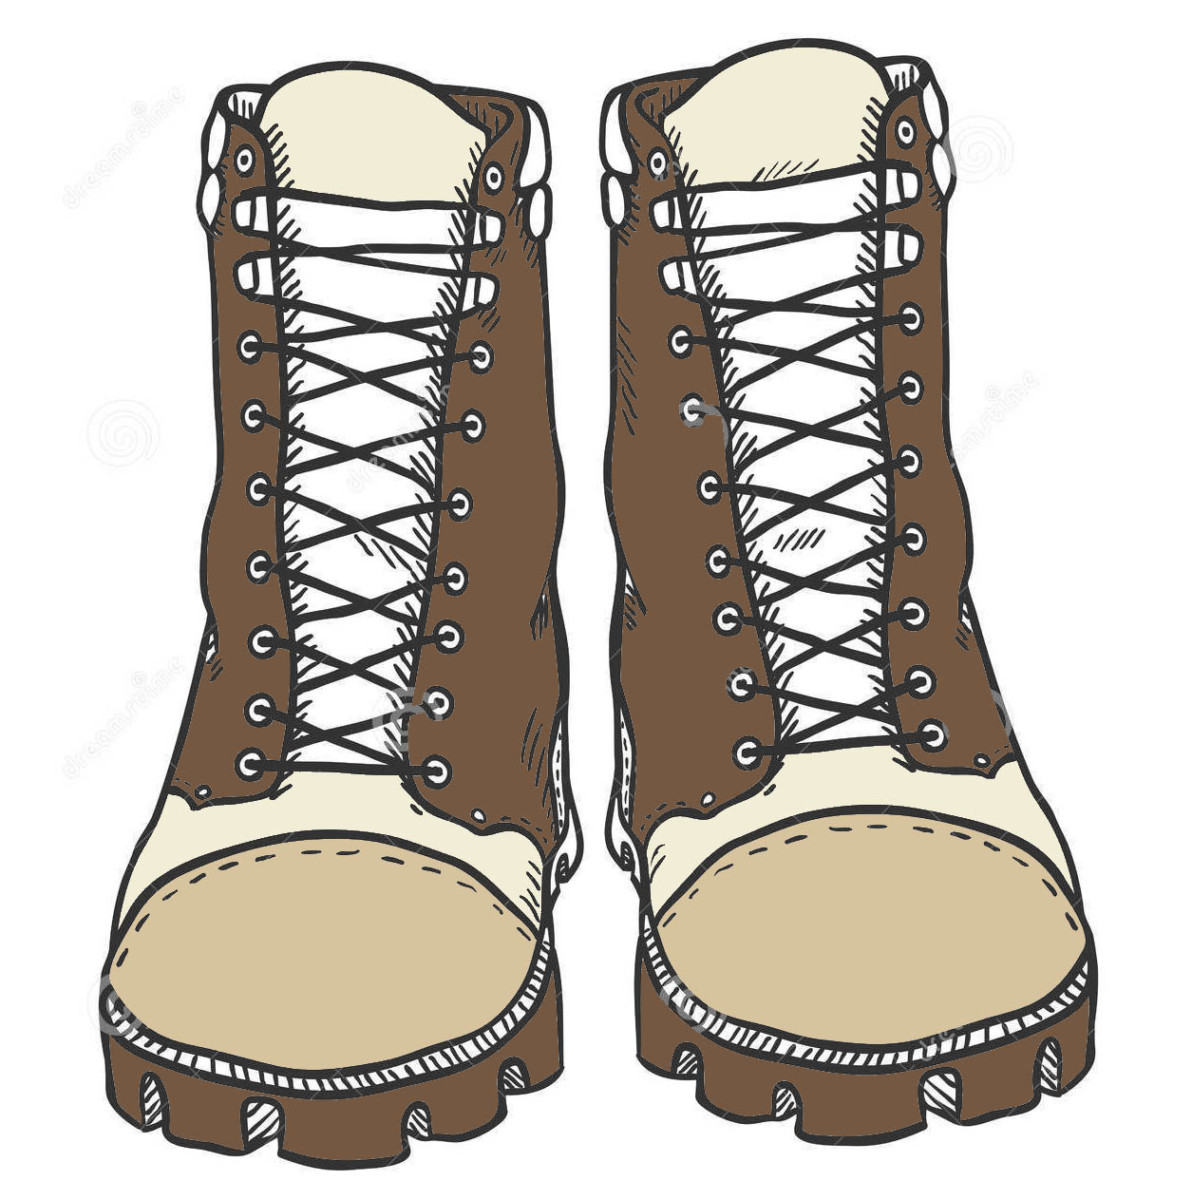 Malawi packing list, item 3: Boots made for walking